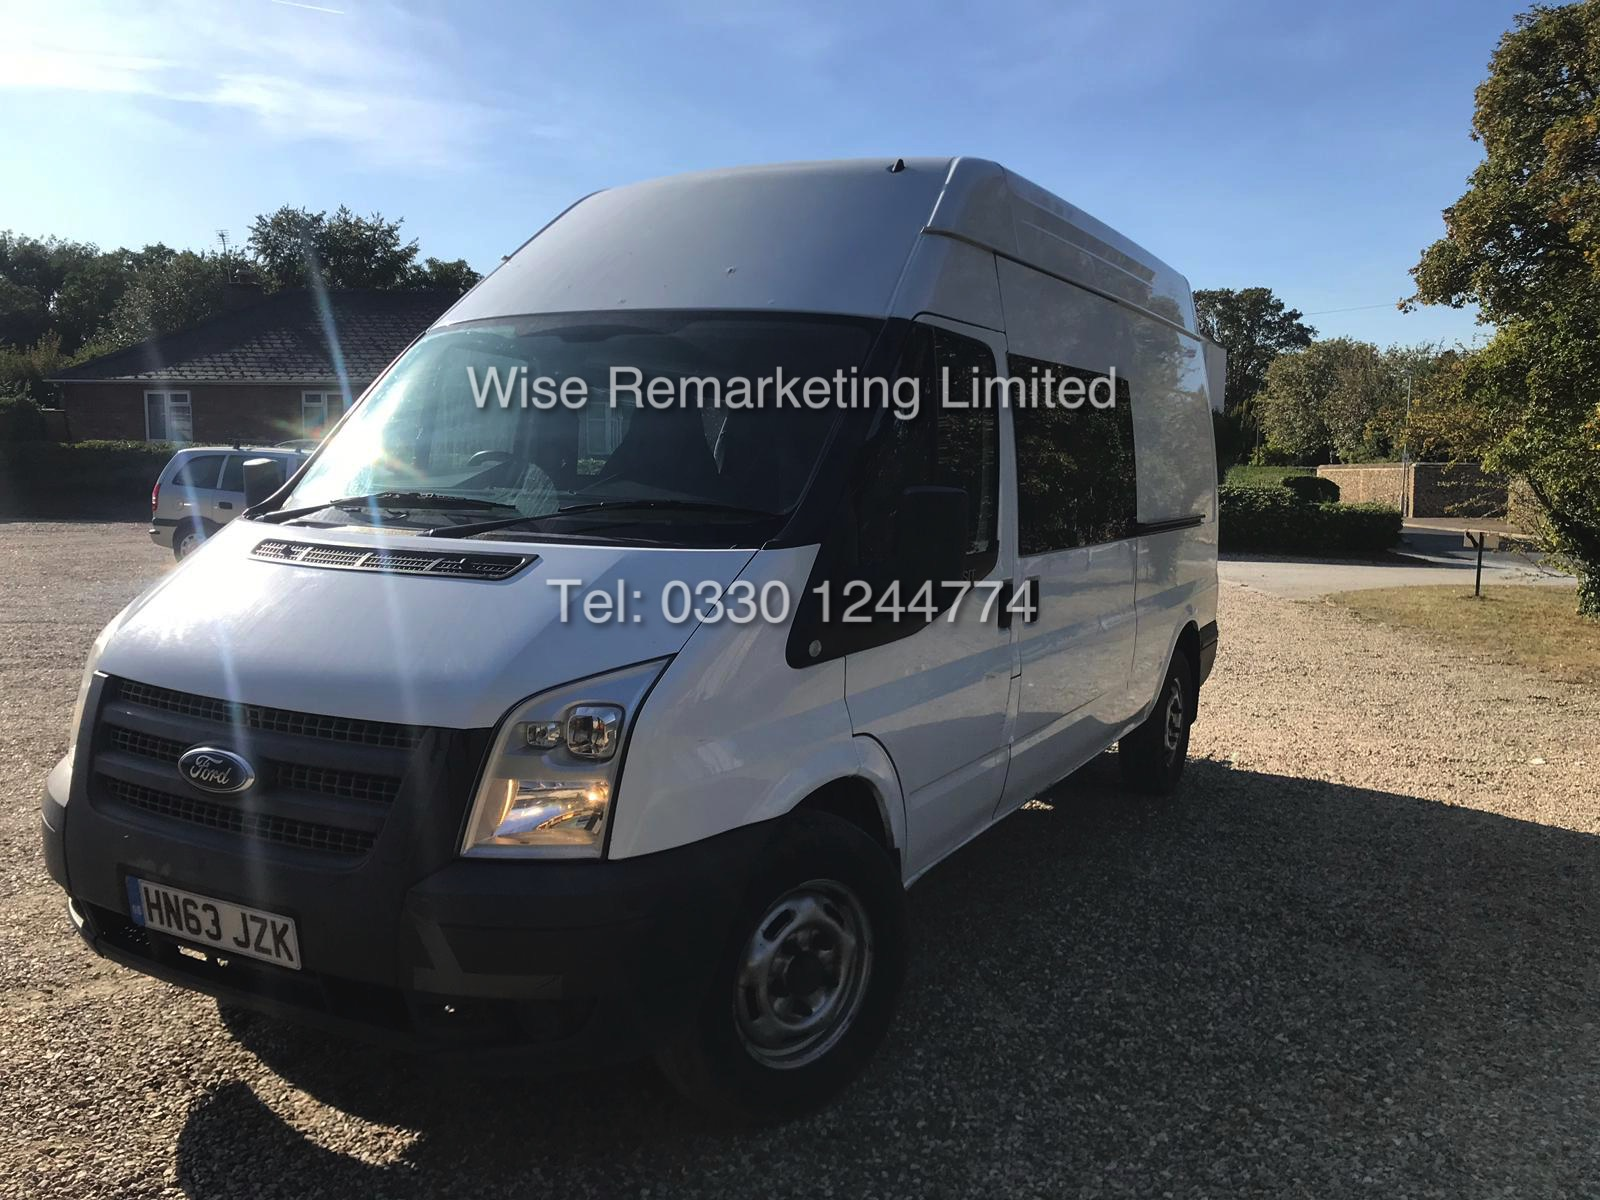 FORD TRANSIT 2.2Tdci T350 RWD *125 BHP* 6 SEATER MESSING UNIT (2014 MODEL) 1 KEEPER FROM NEW - Image 3 of 13